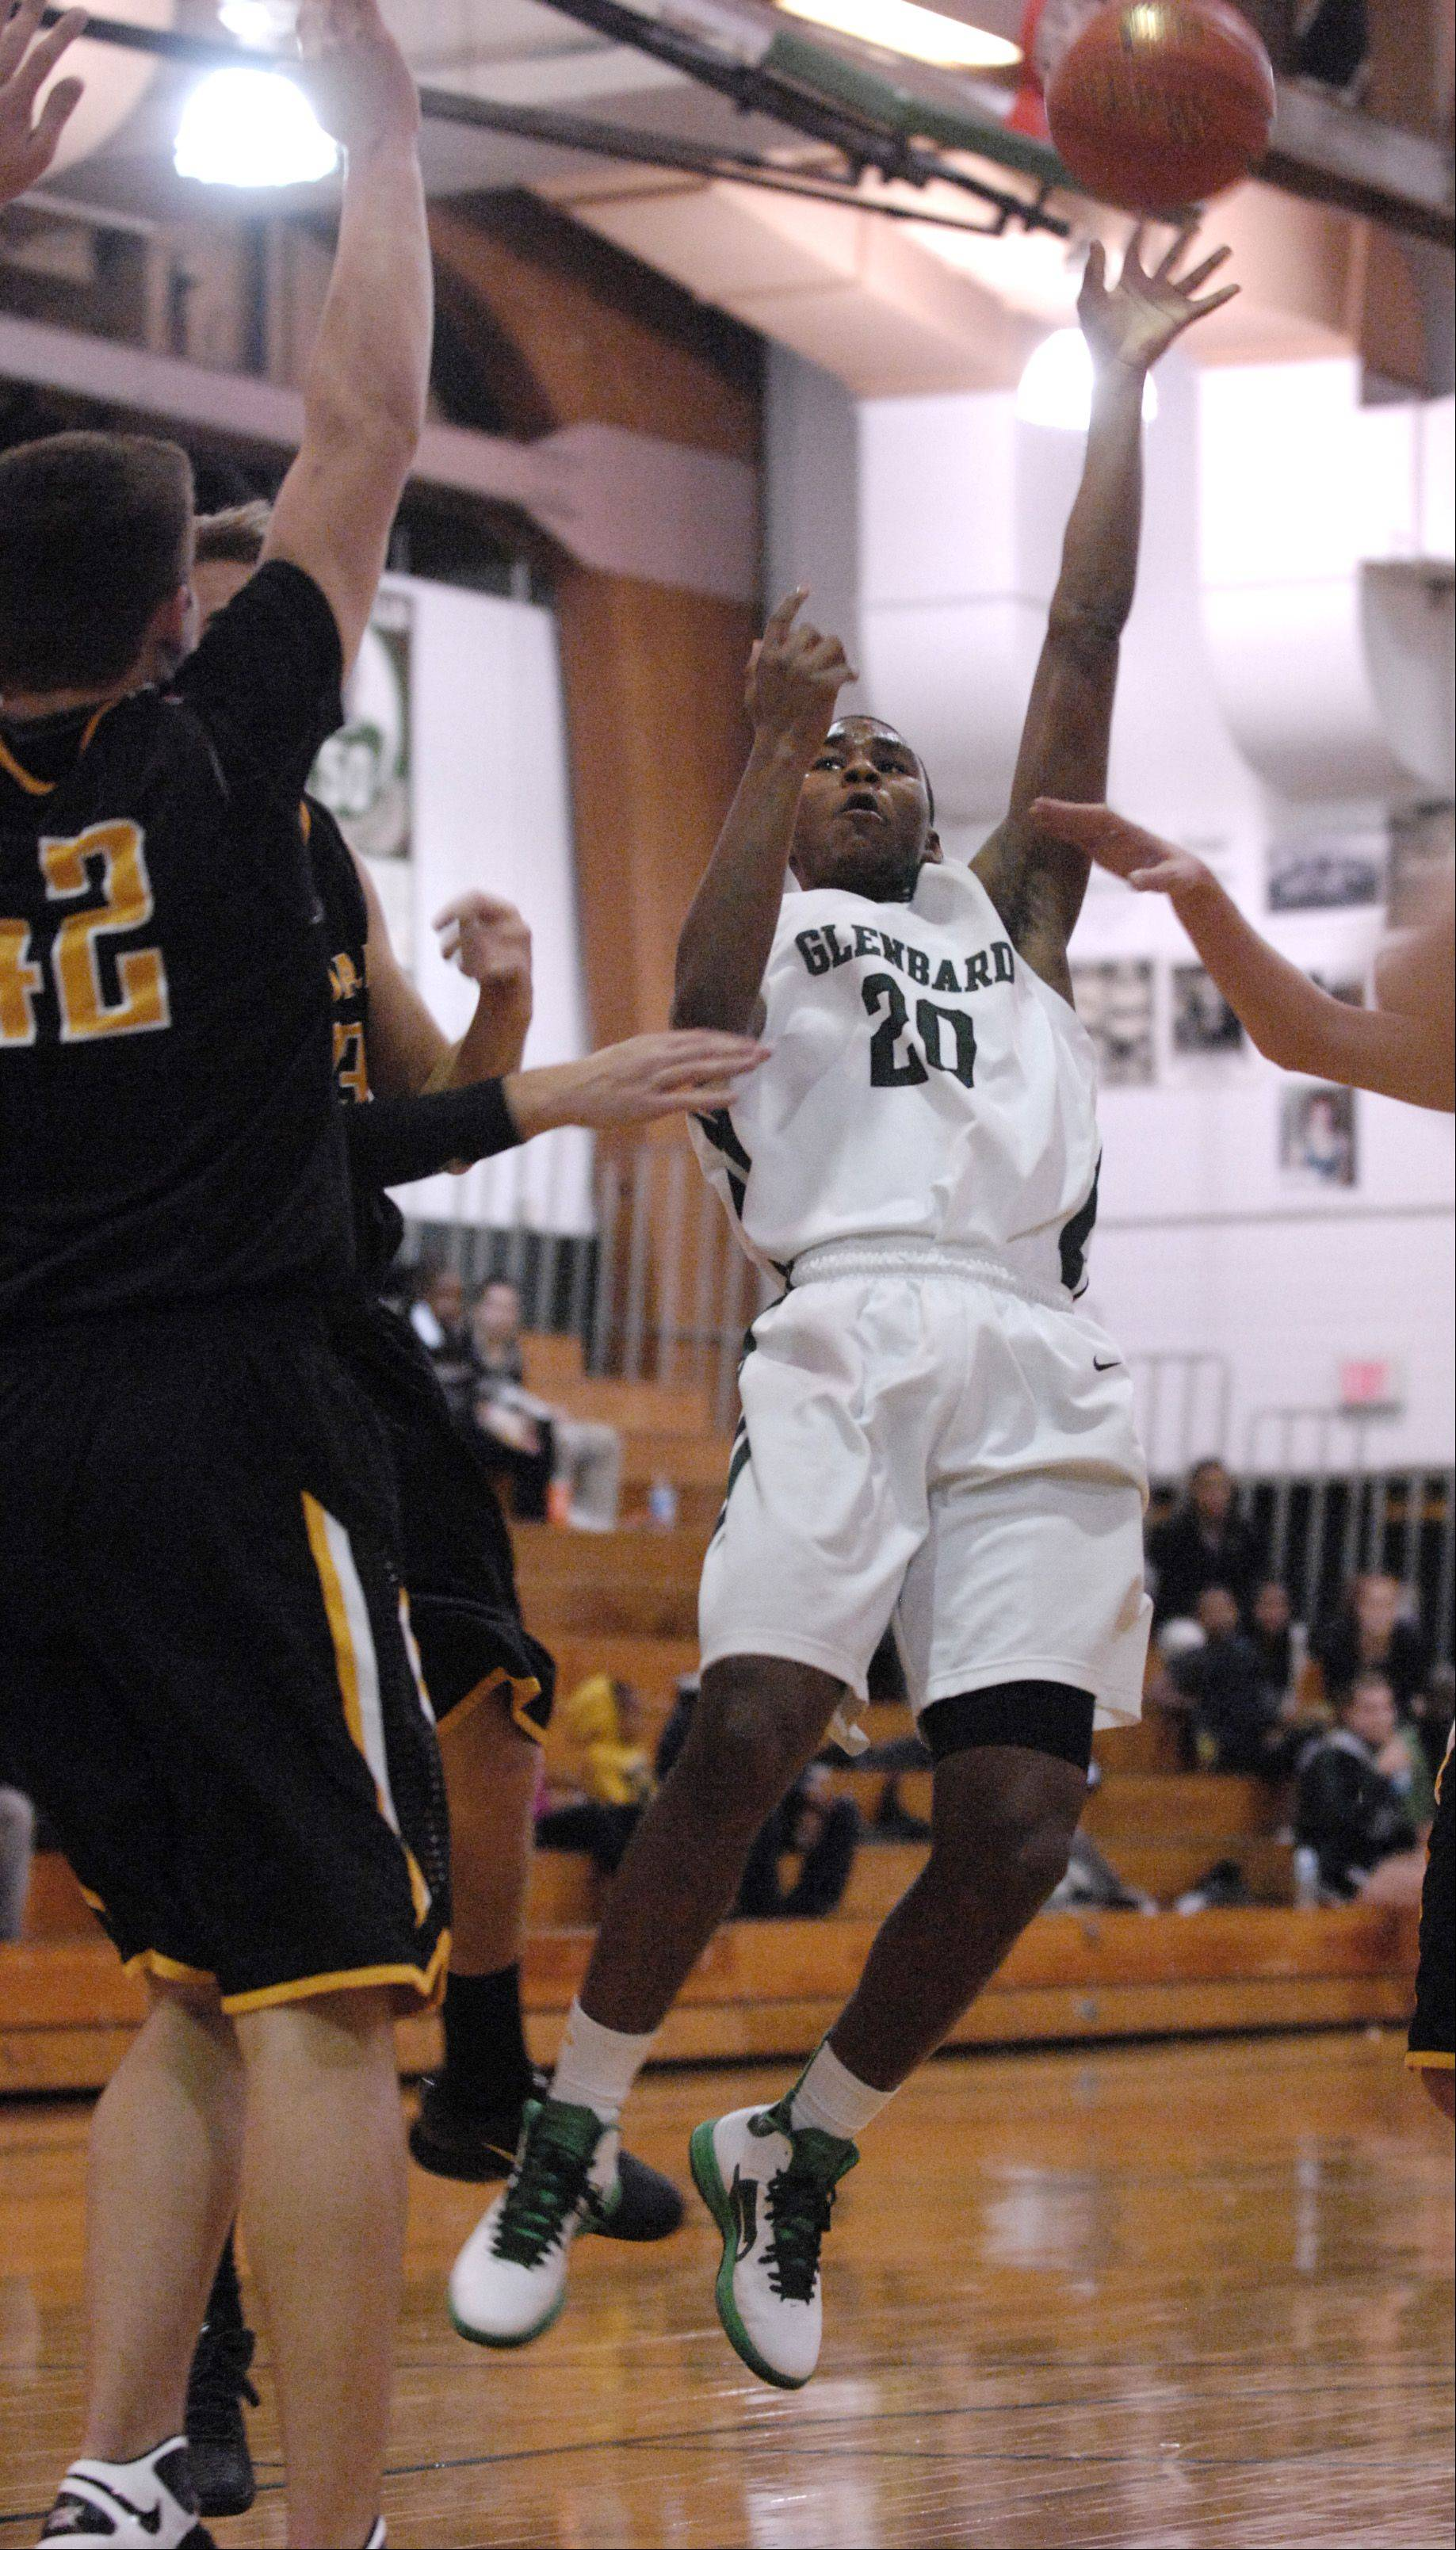 Junior point guard Corey Davis is one of the reasons surprising Glenbard West is undefeated so far this season.